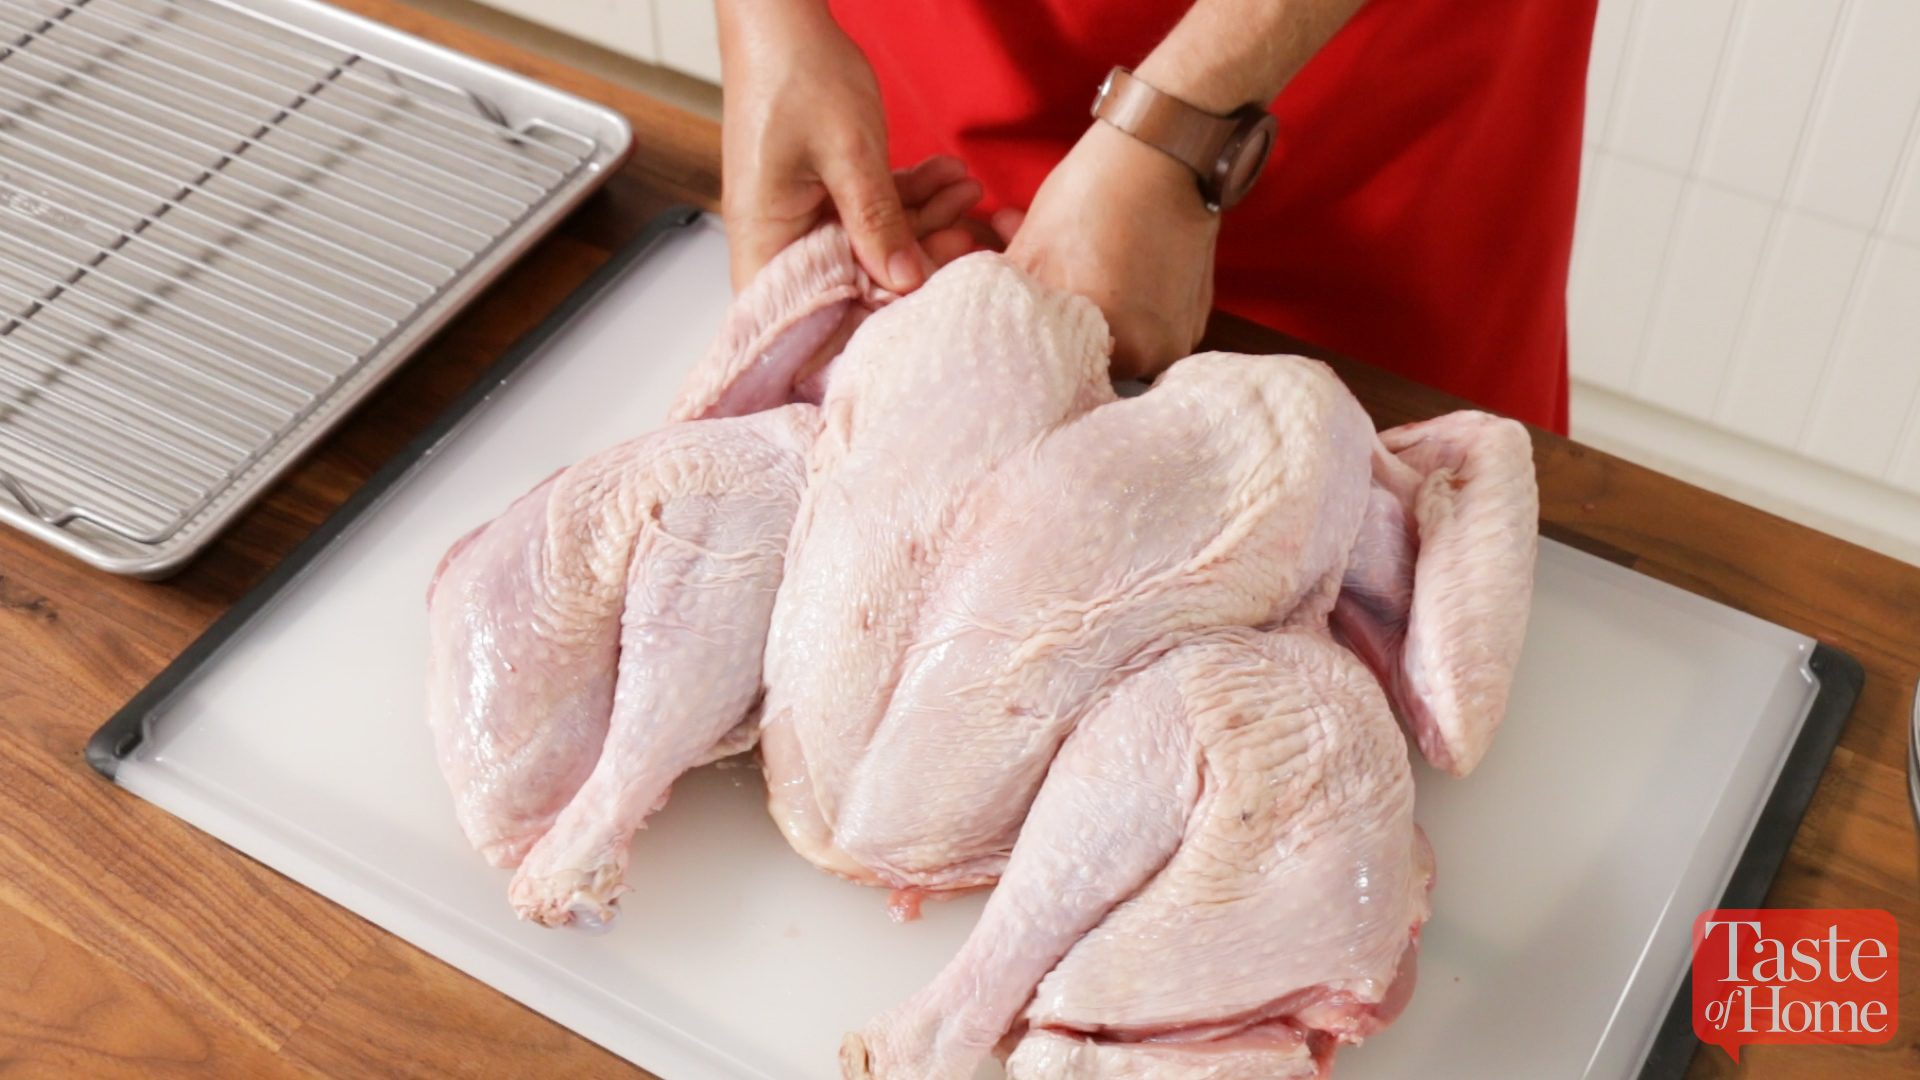 How to Spatchcock a Turkey: The Secret Cooking Technique You've Been Missing Out On